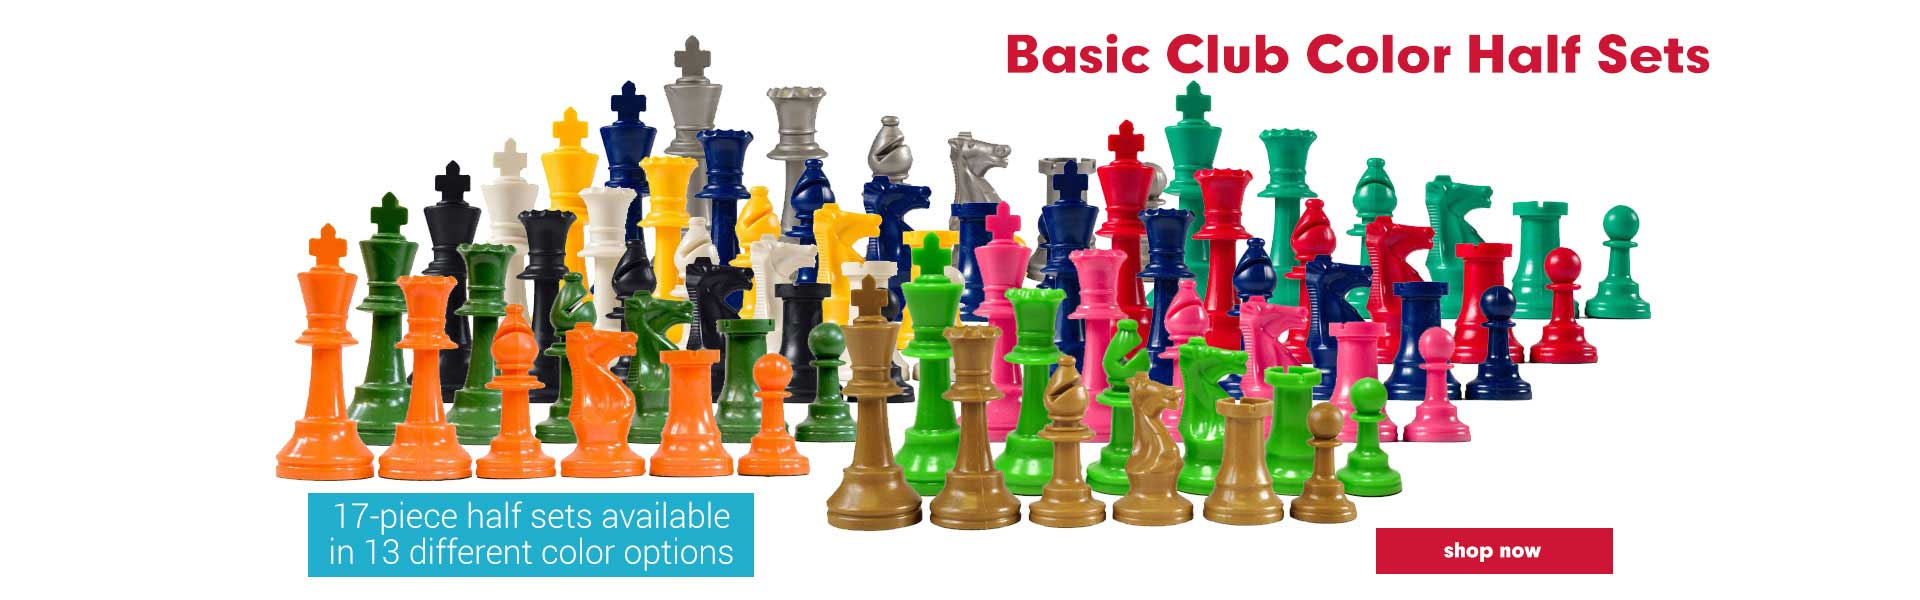 Basic Unweighted Colored Chess Pieces